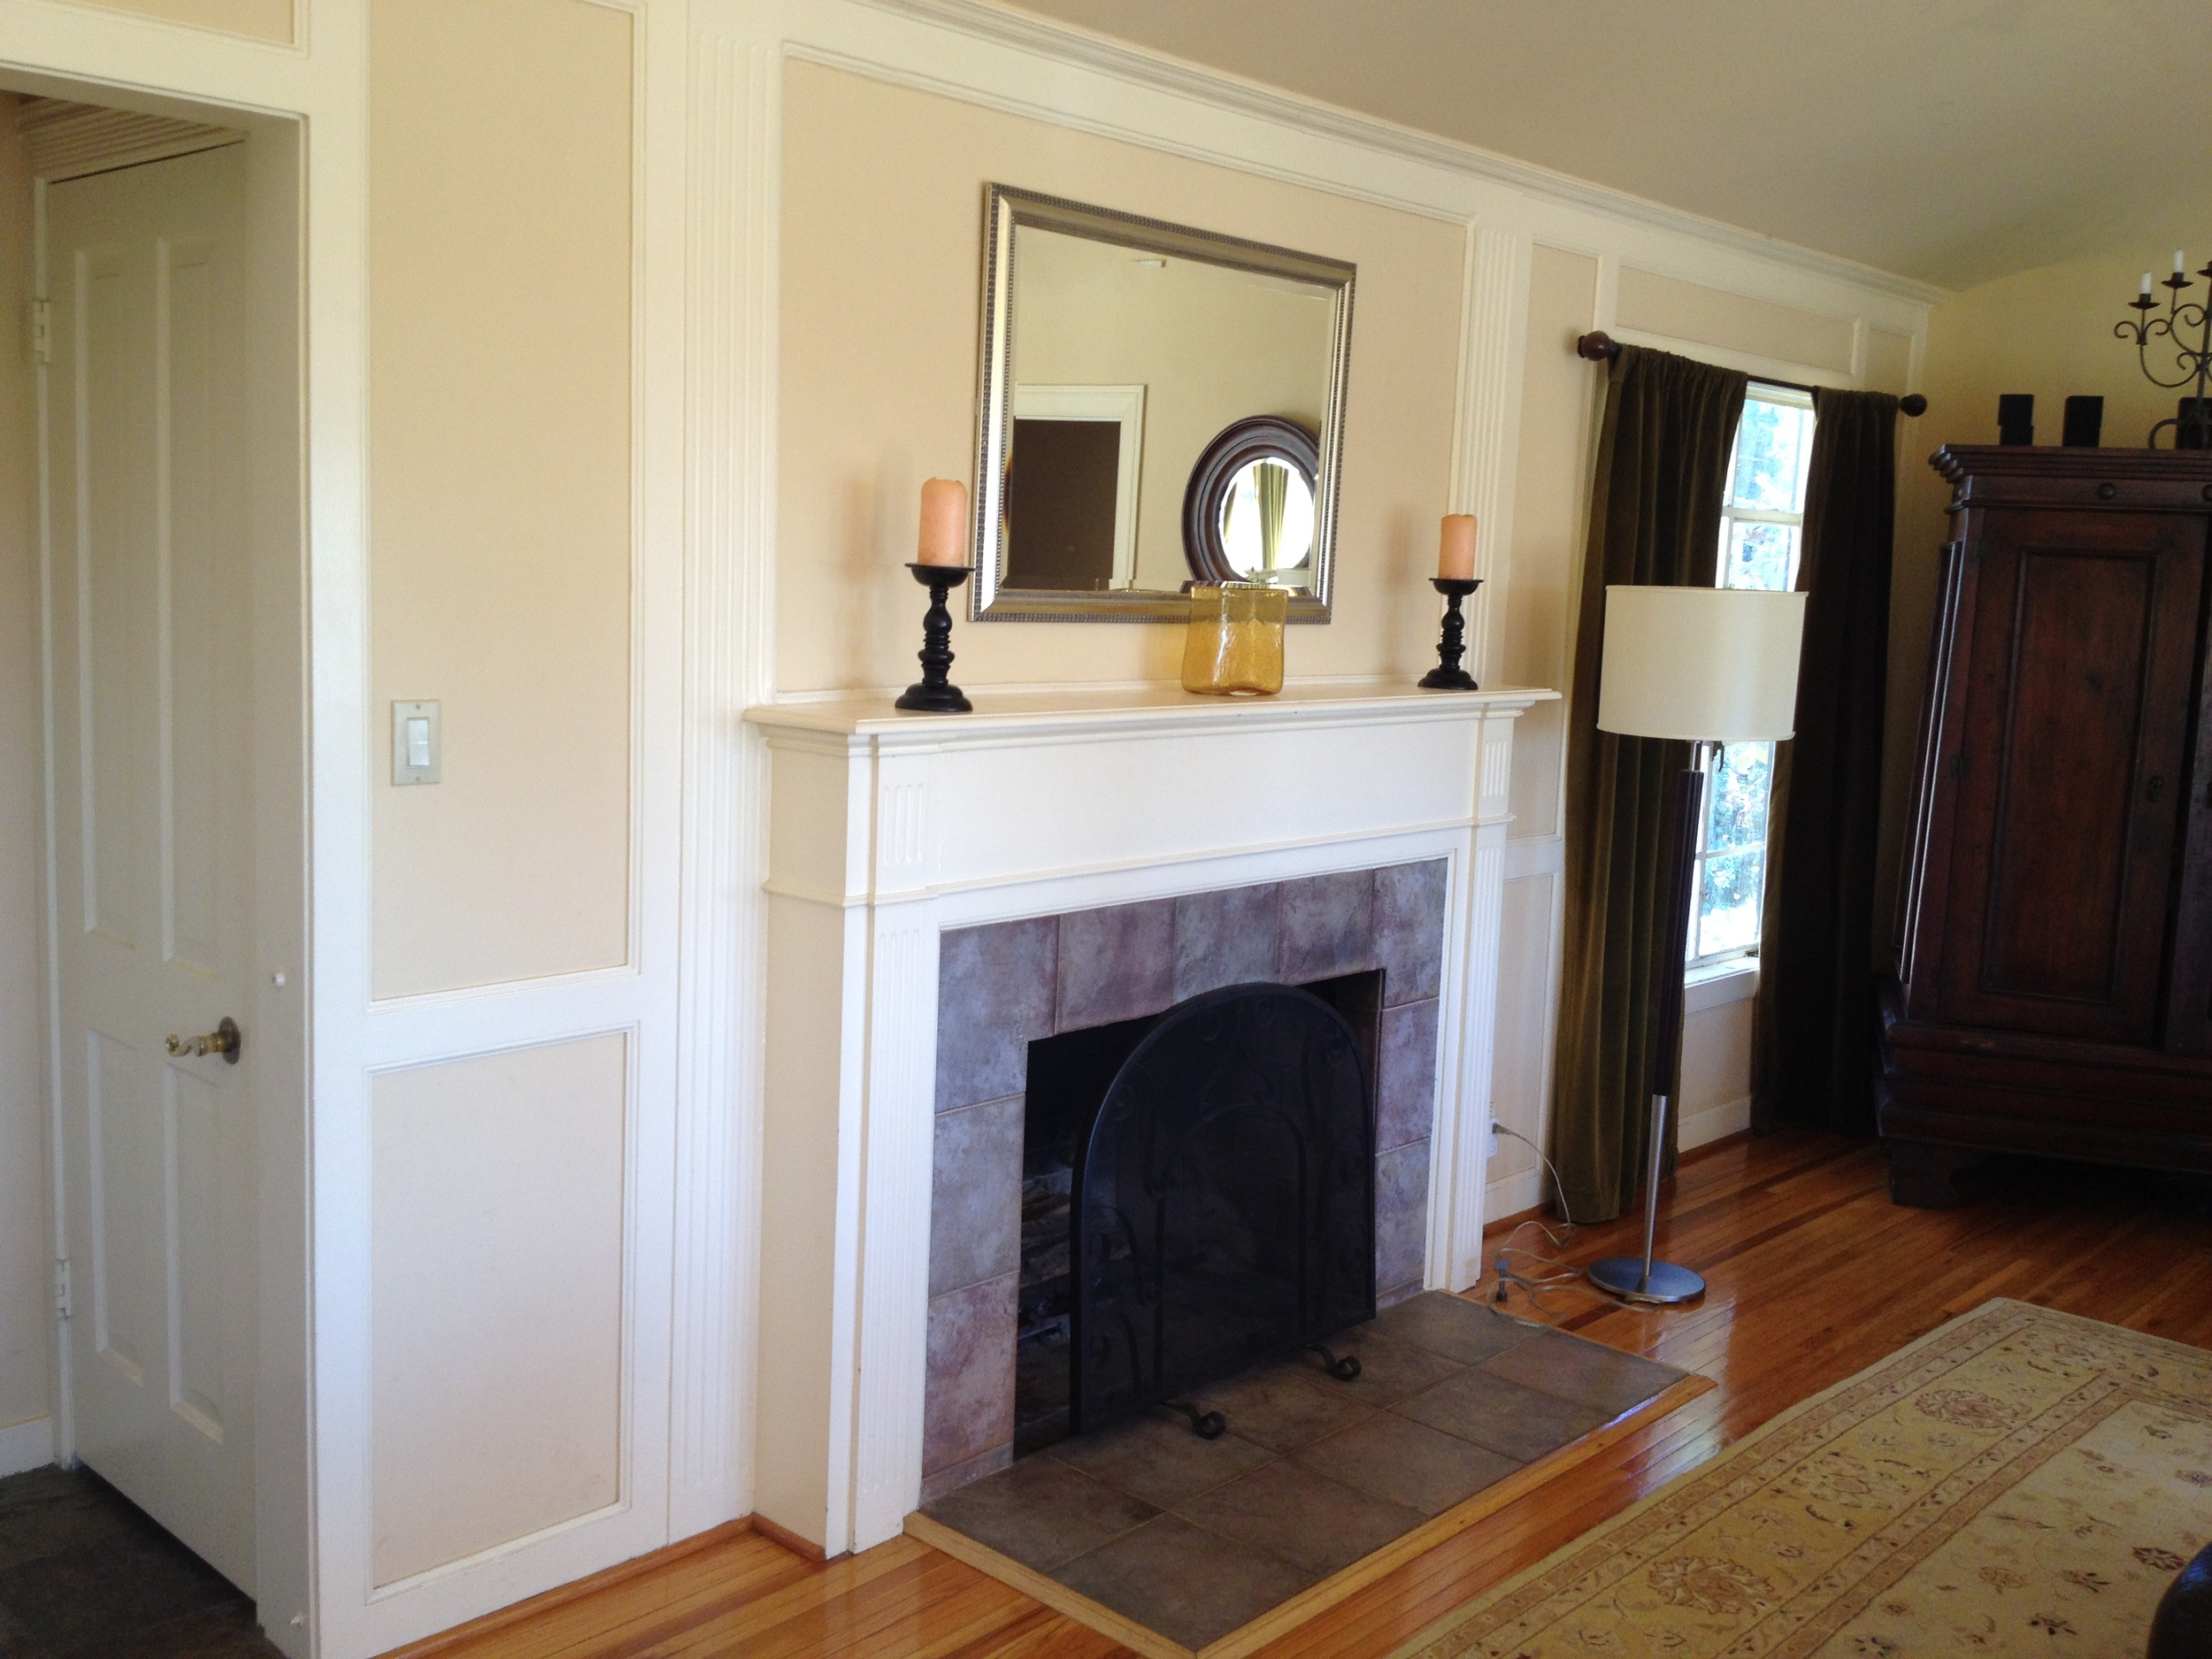 Fireplace - BEFORE / ceramic tile